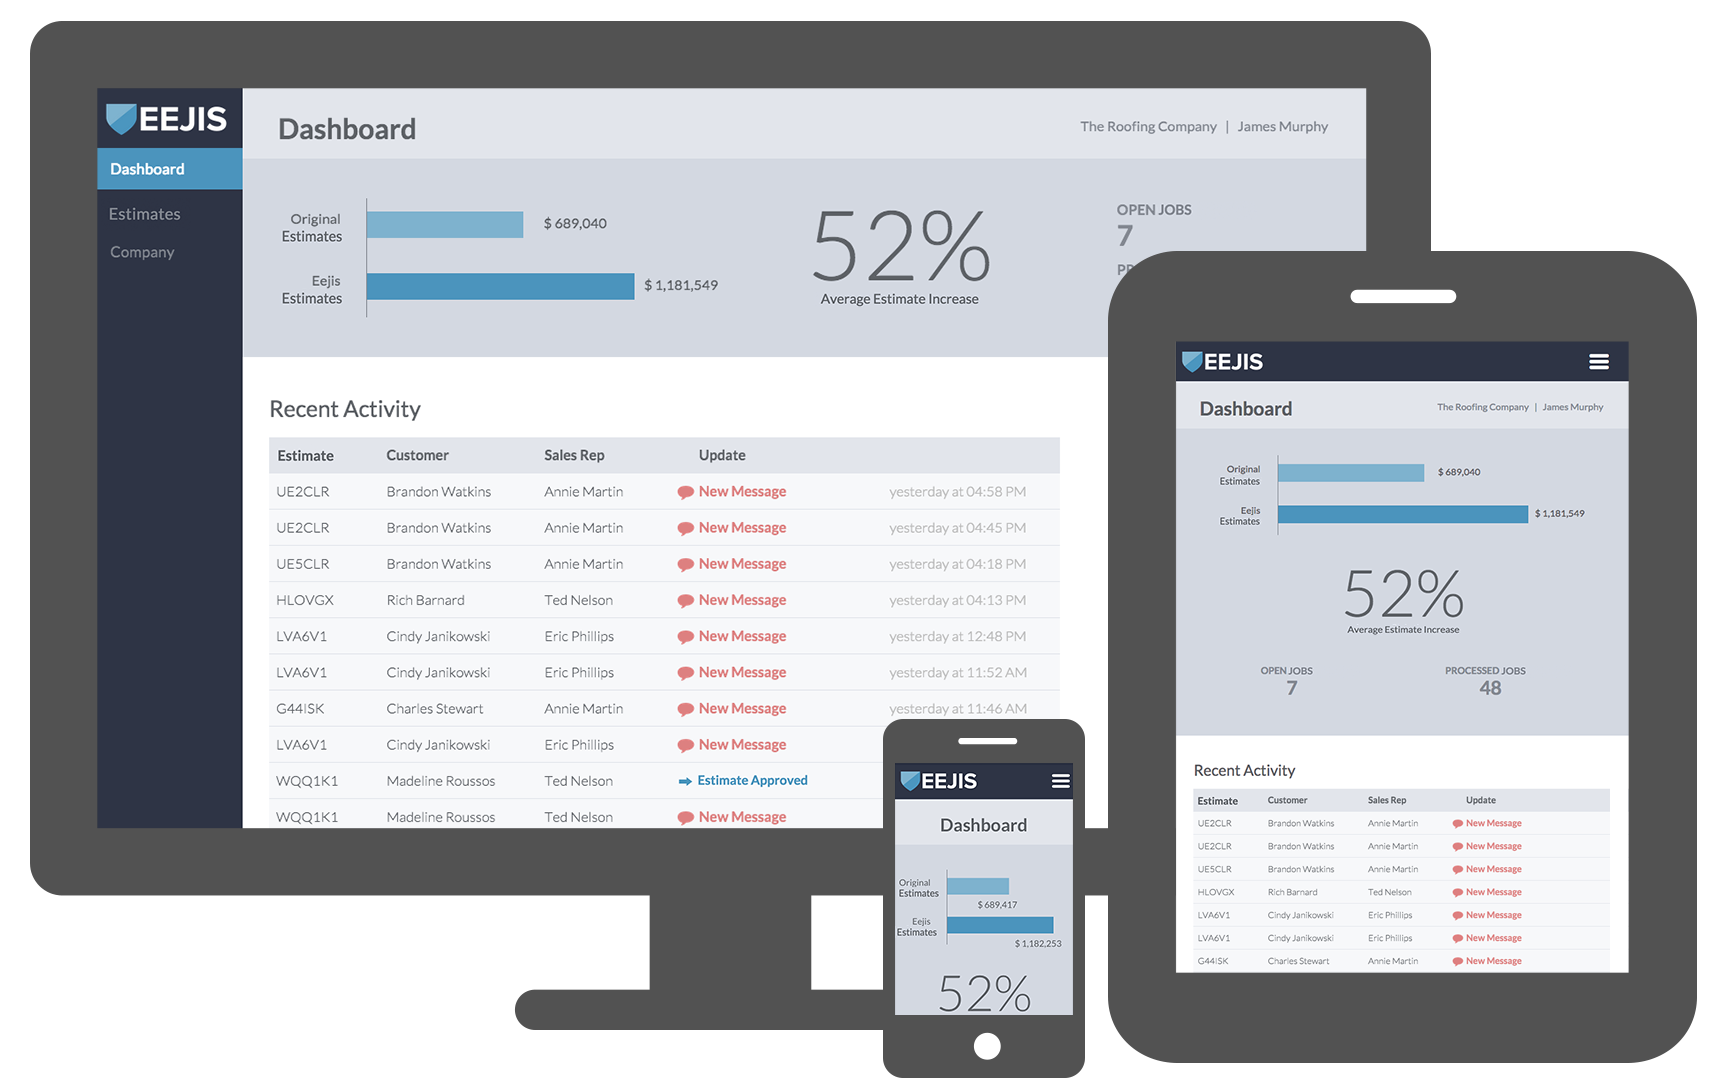 EEJIS is fully responsive, accessible from any device.